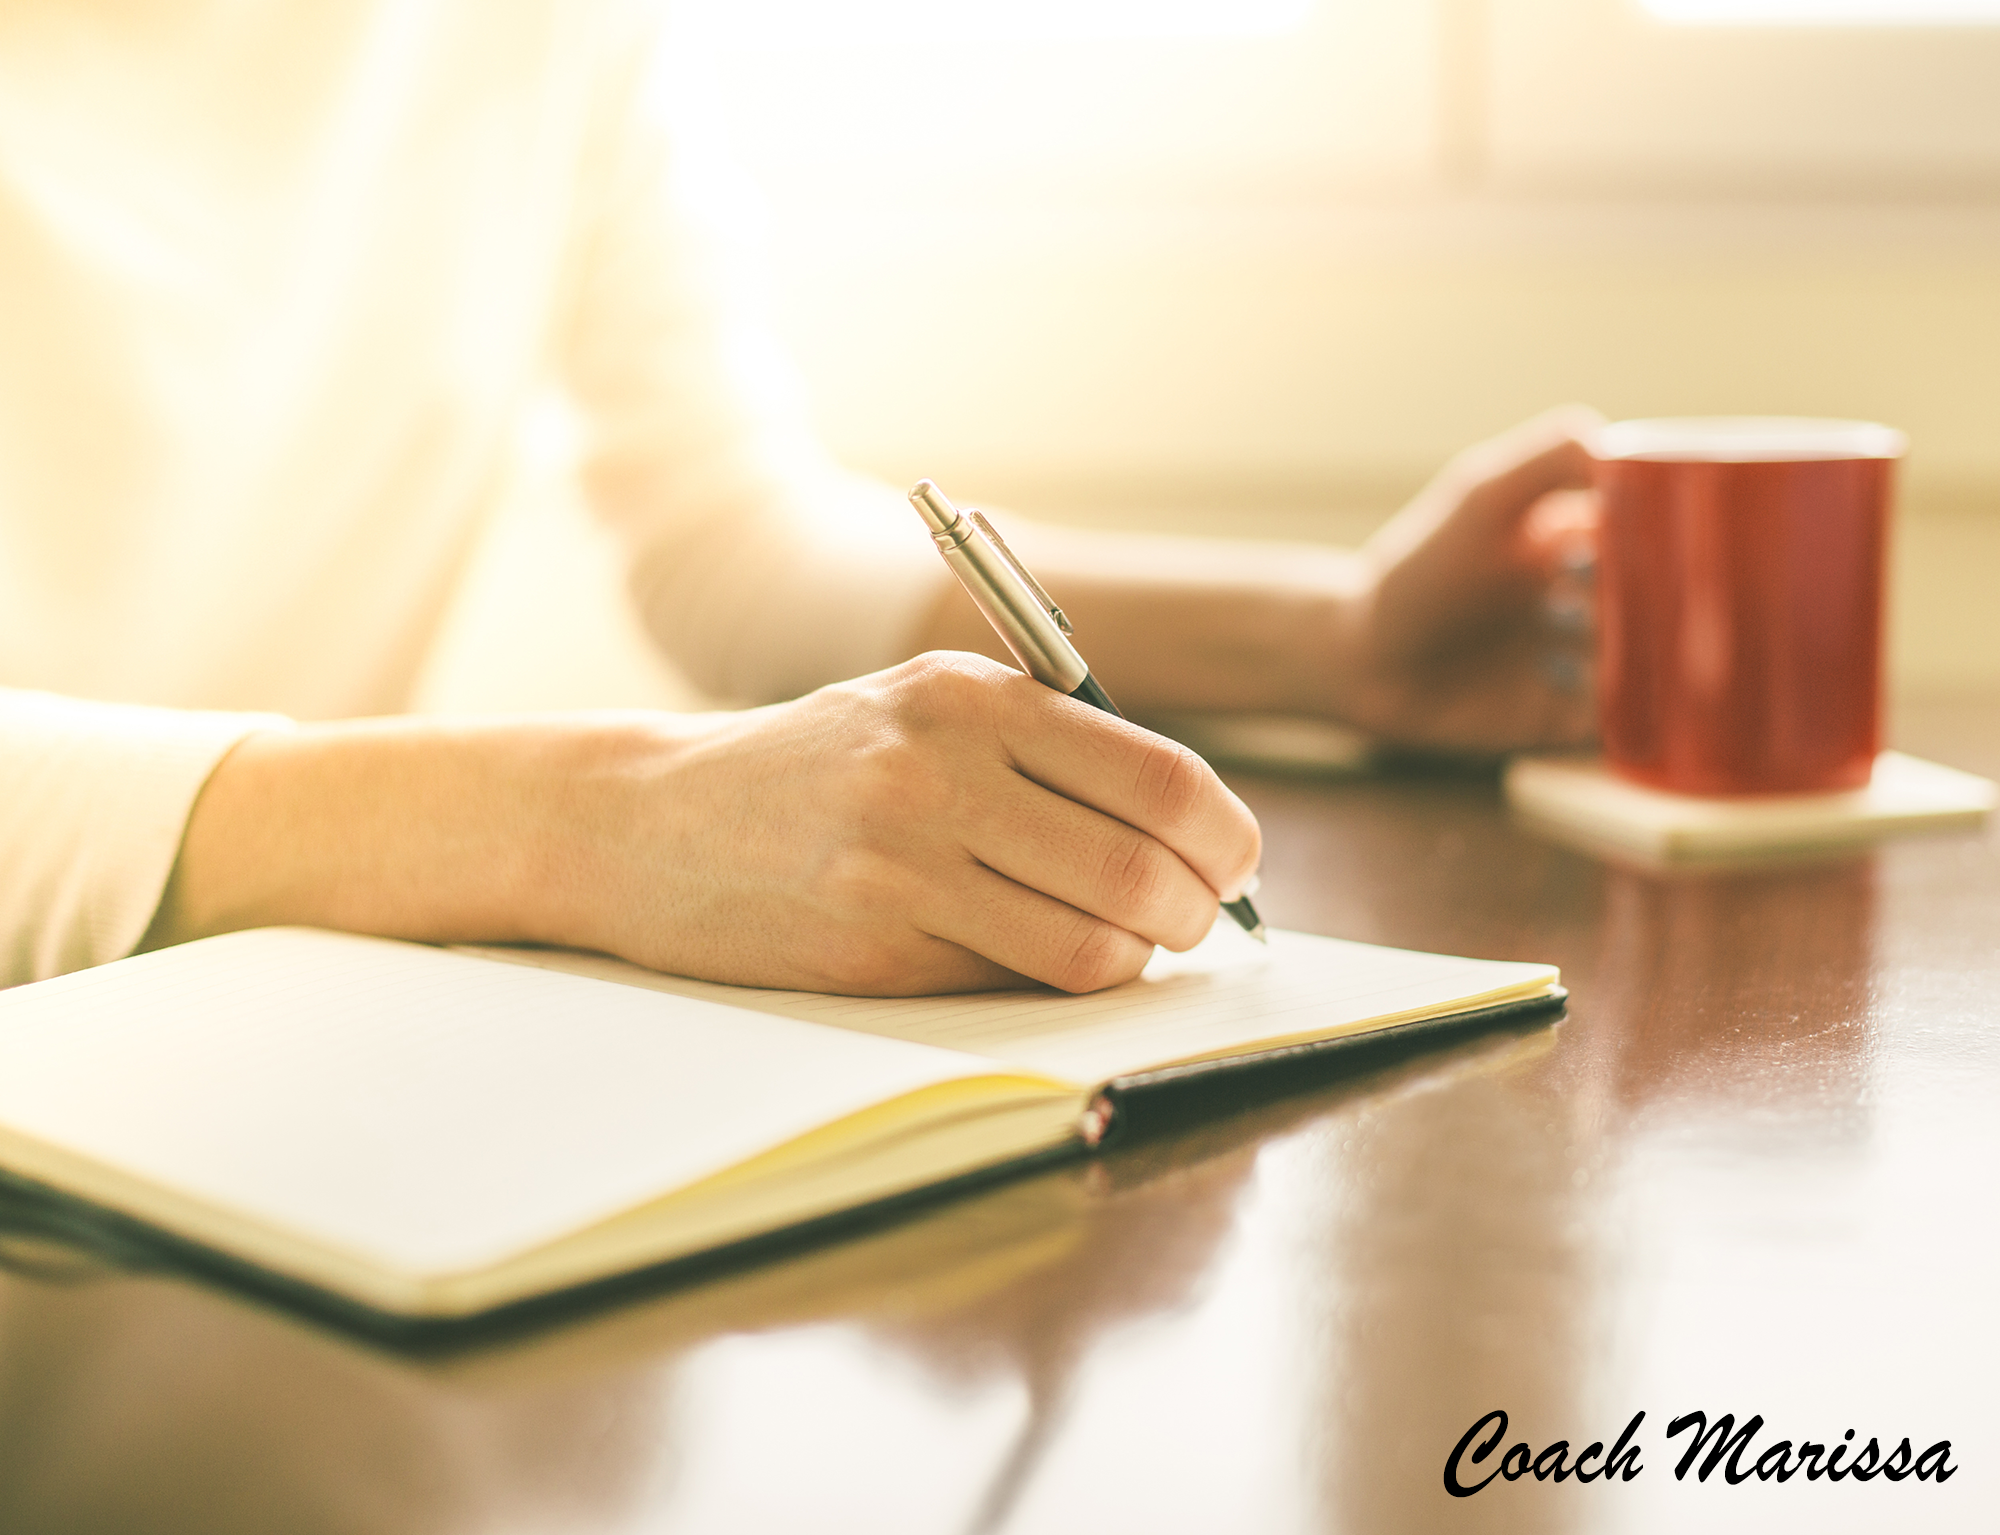 Coach Marissa Jacobs' tips for increasing your writing practice creativity with a ritual of morning pages.